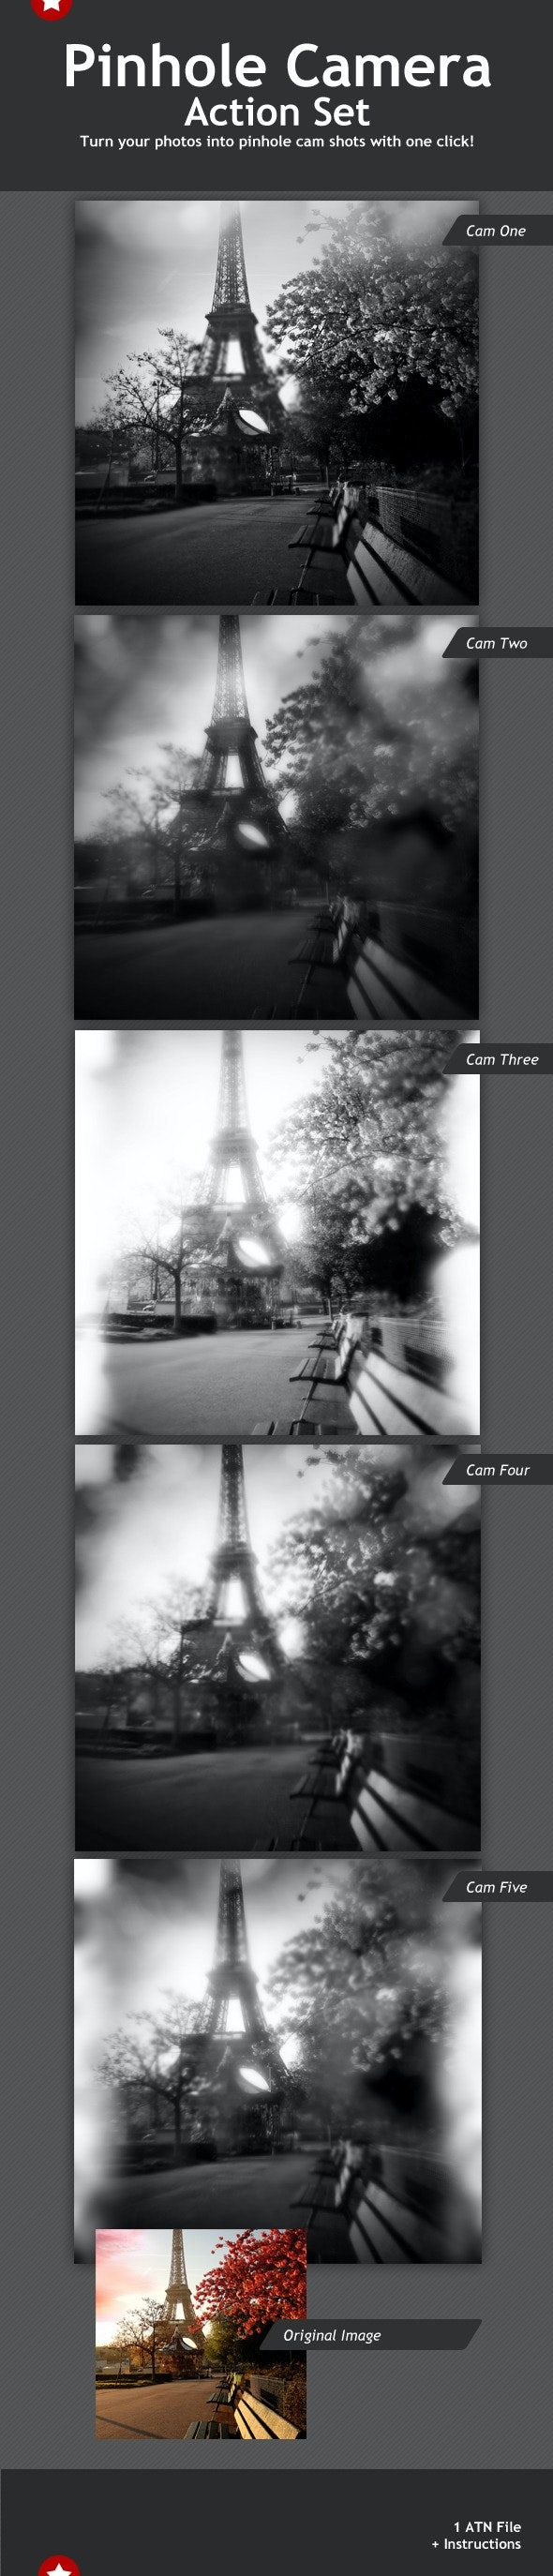 Pinhole Camera Actions Set - Photo Effects Actions